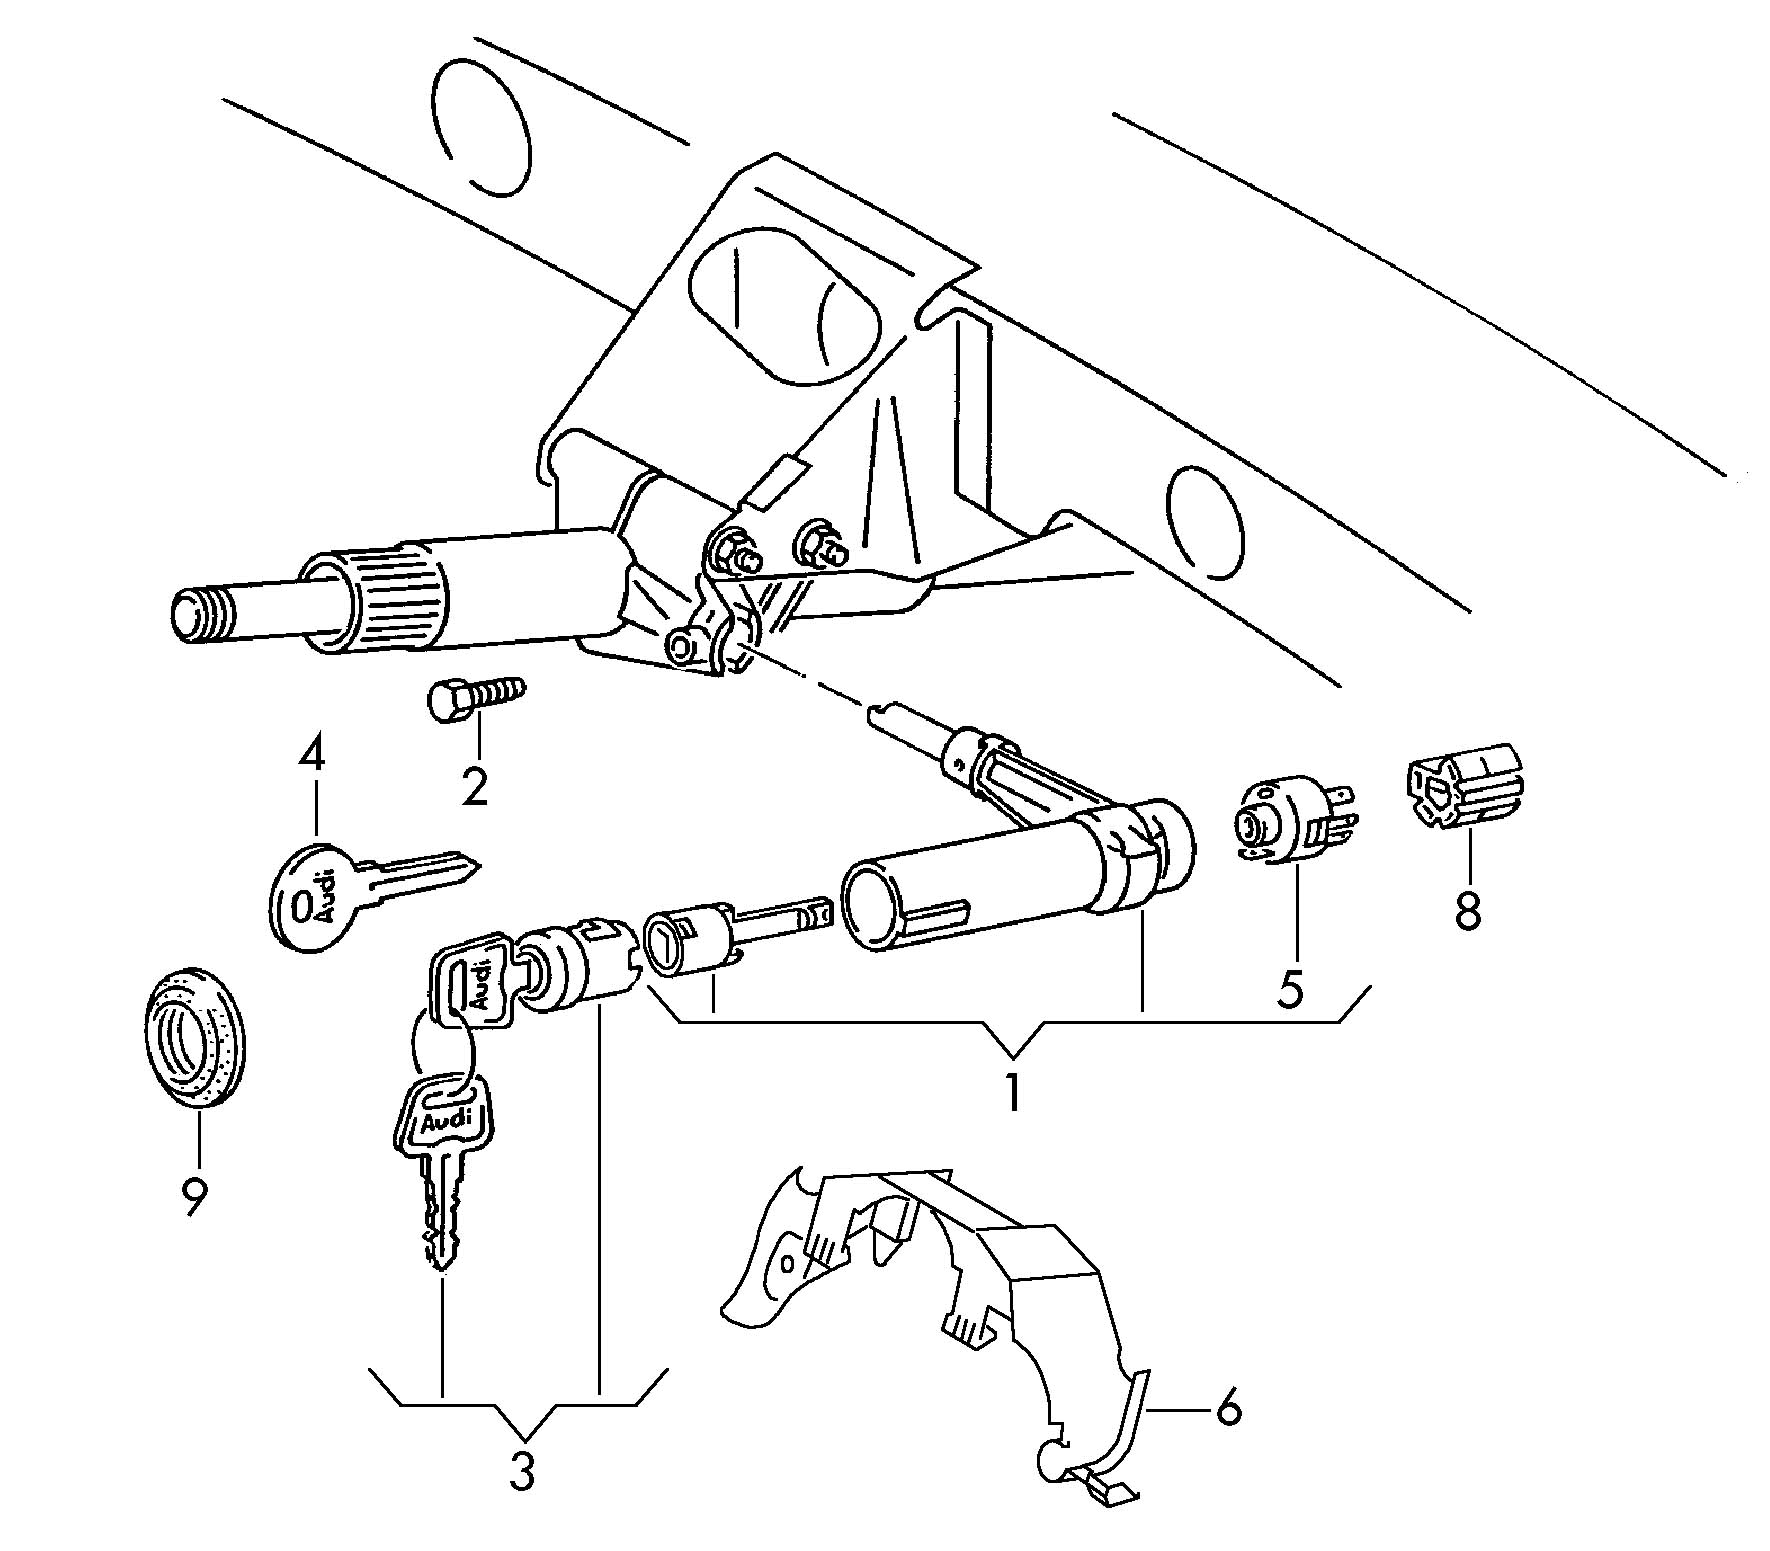 Volkswagen Jetta Rework if necessary ignition starter